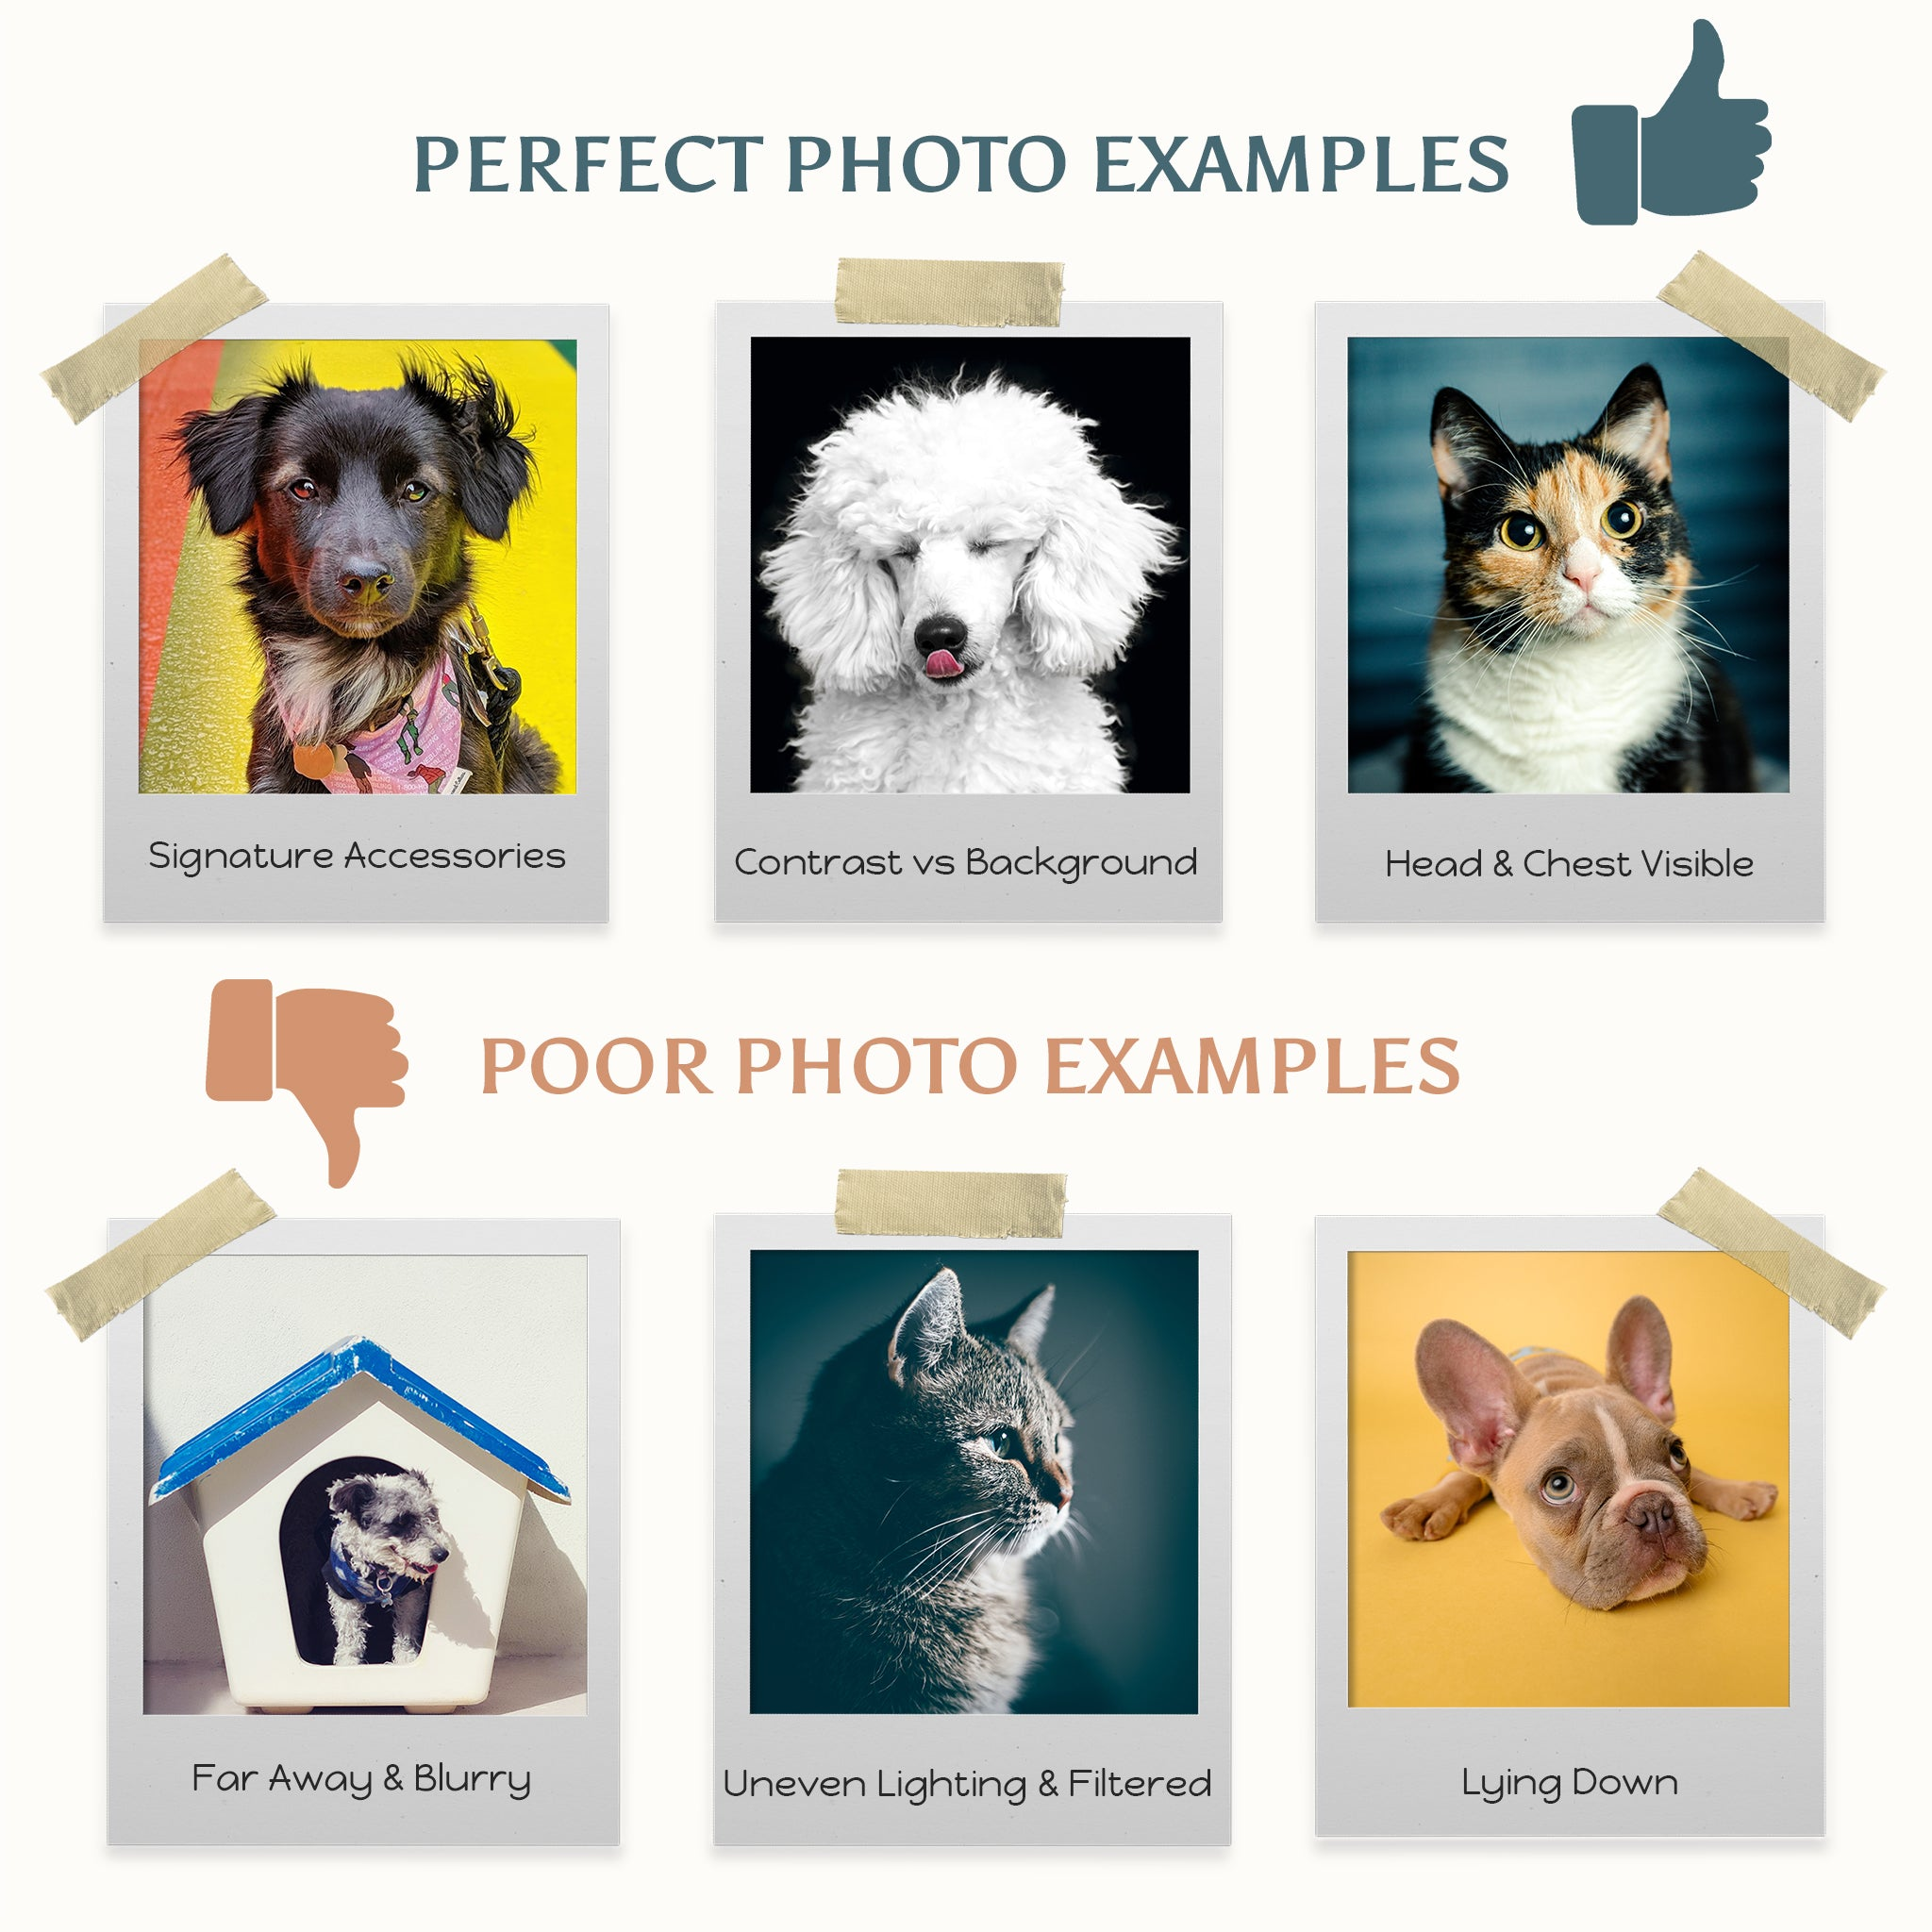 Perfect photo of pets to upload: head and chest visible, contrast between pet and background, including signature accessories. Poor pet photo examples: for away and blurry, uneven lighting and filtered, pet laying down.